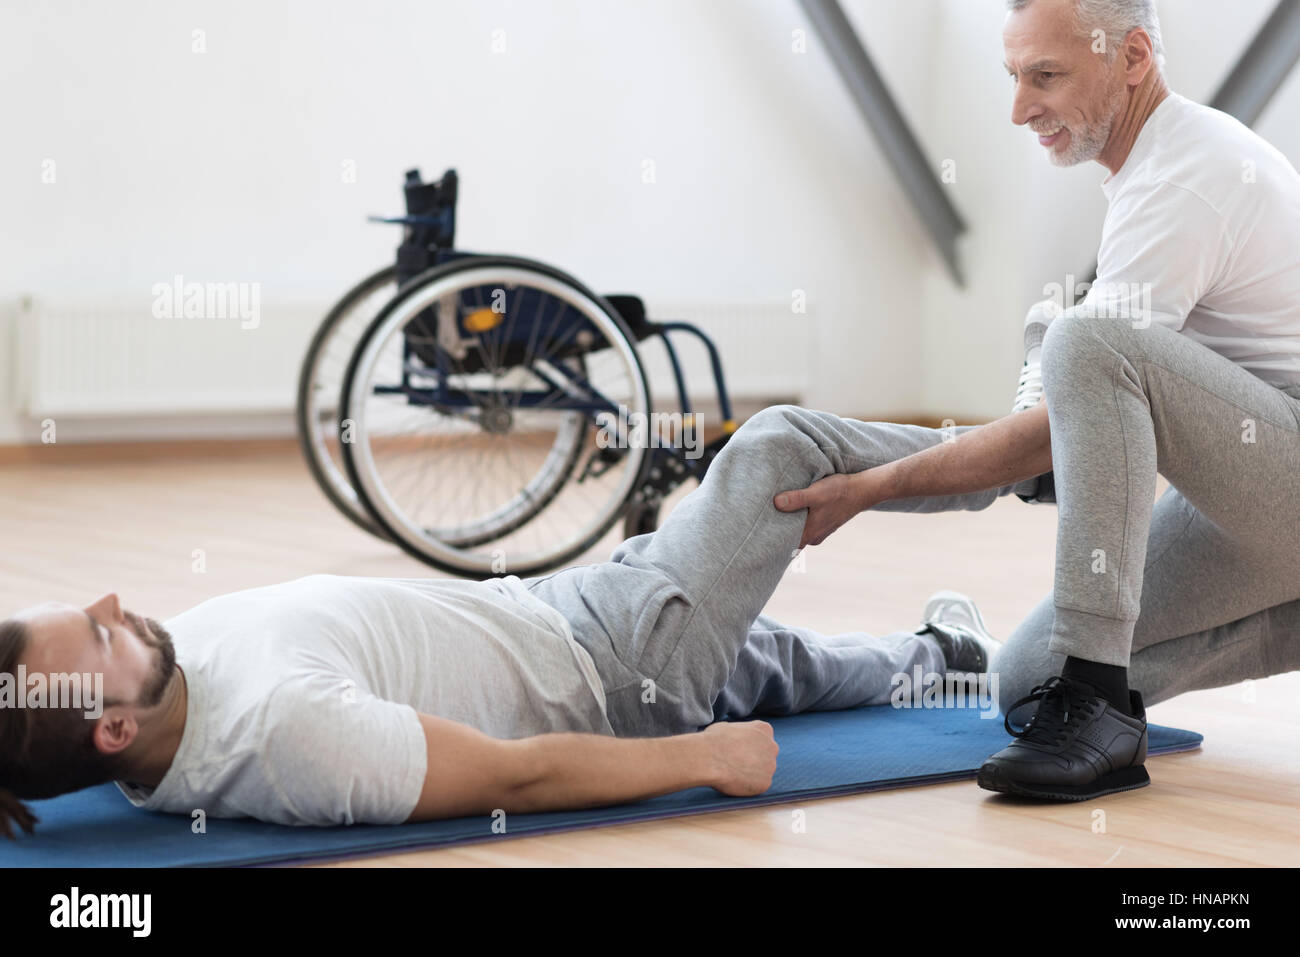 Charismatic orthopedist stretching the handicapped in the gym - Stock Image